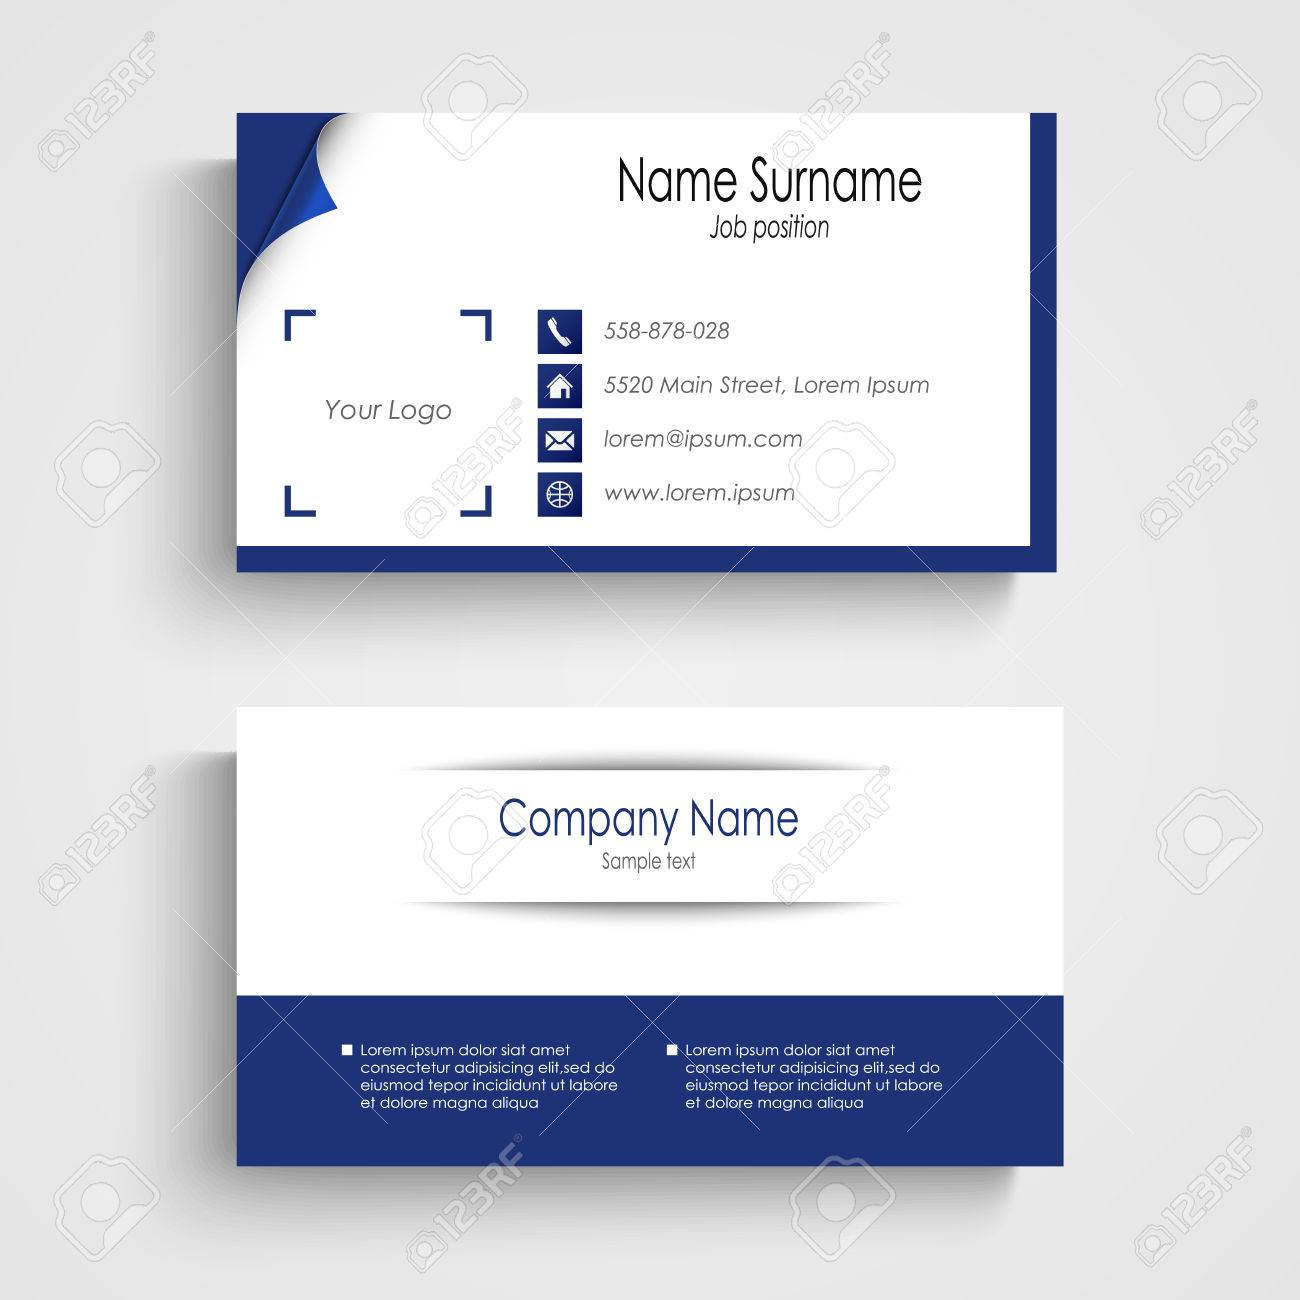 Modern blue light business card template vector eps 10 royalty free modern blue light business card template vector eps 10 stock vector 26028528 flashek